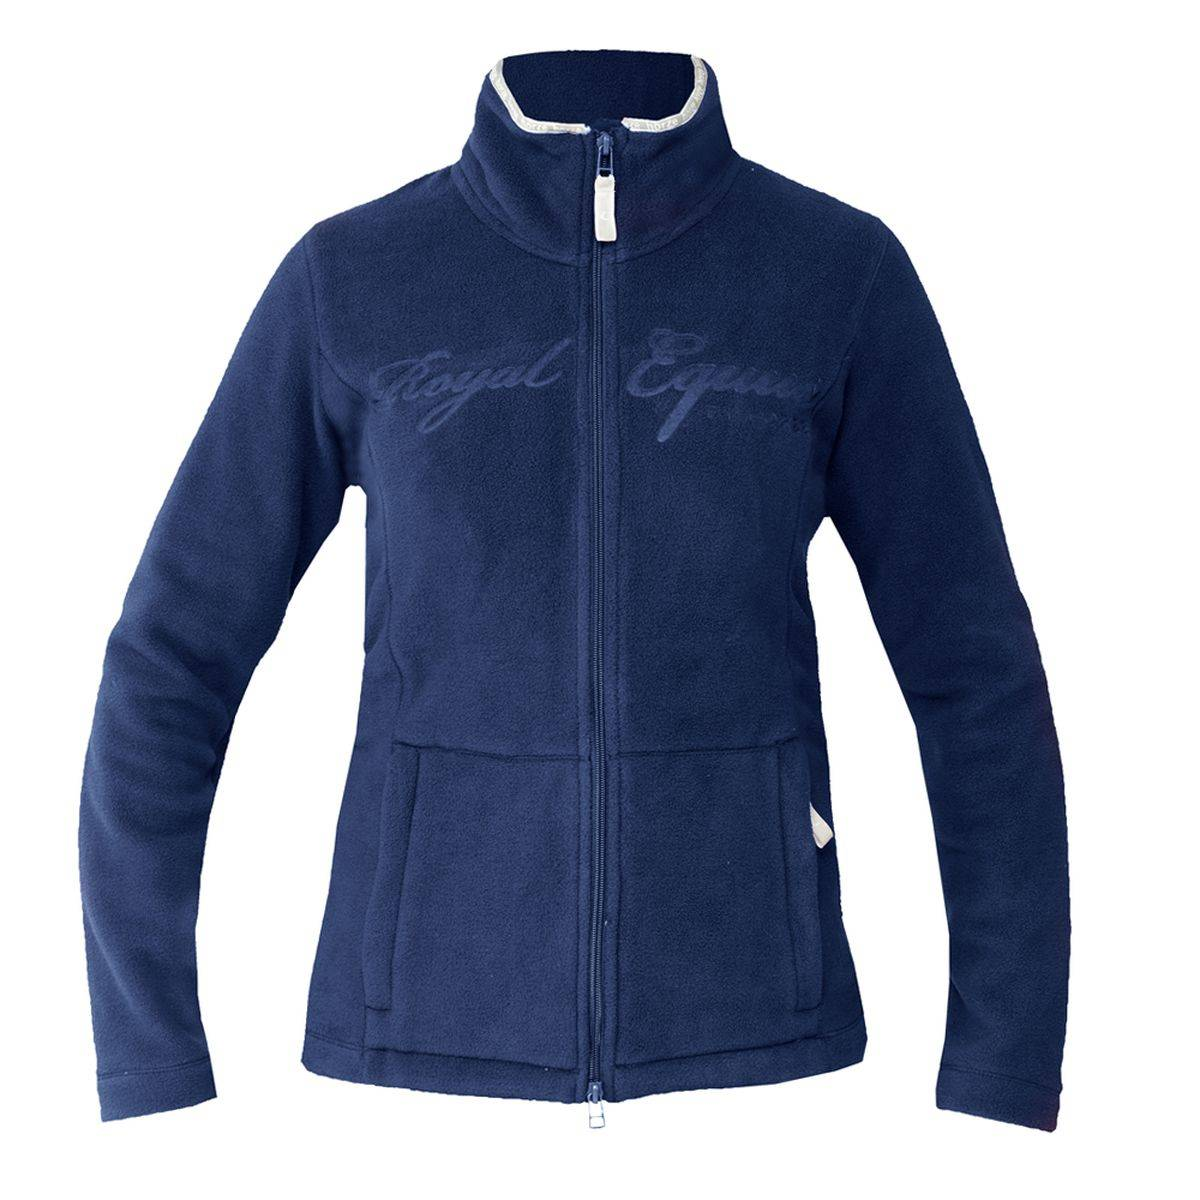 HorZe Sara Fleece Jacket with Heat Print - Junior